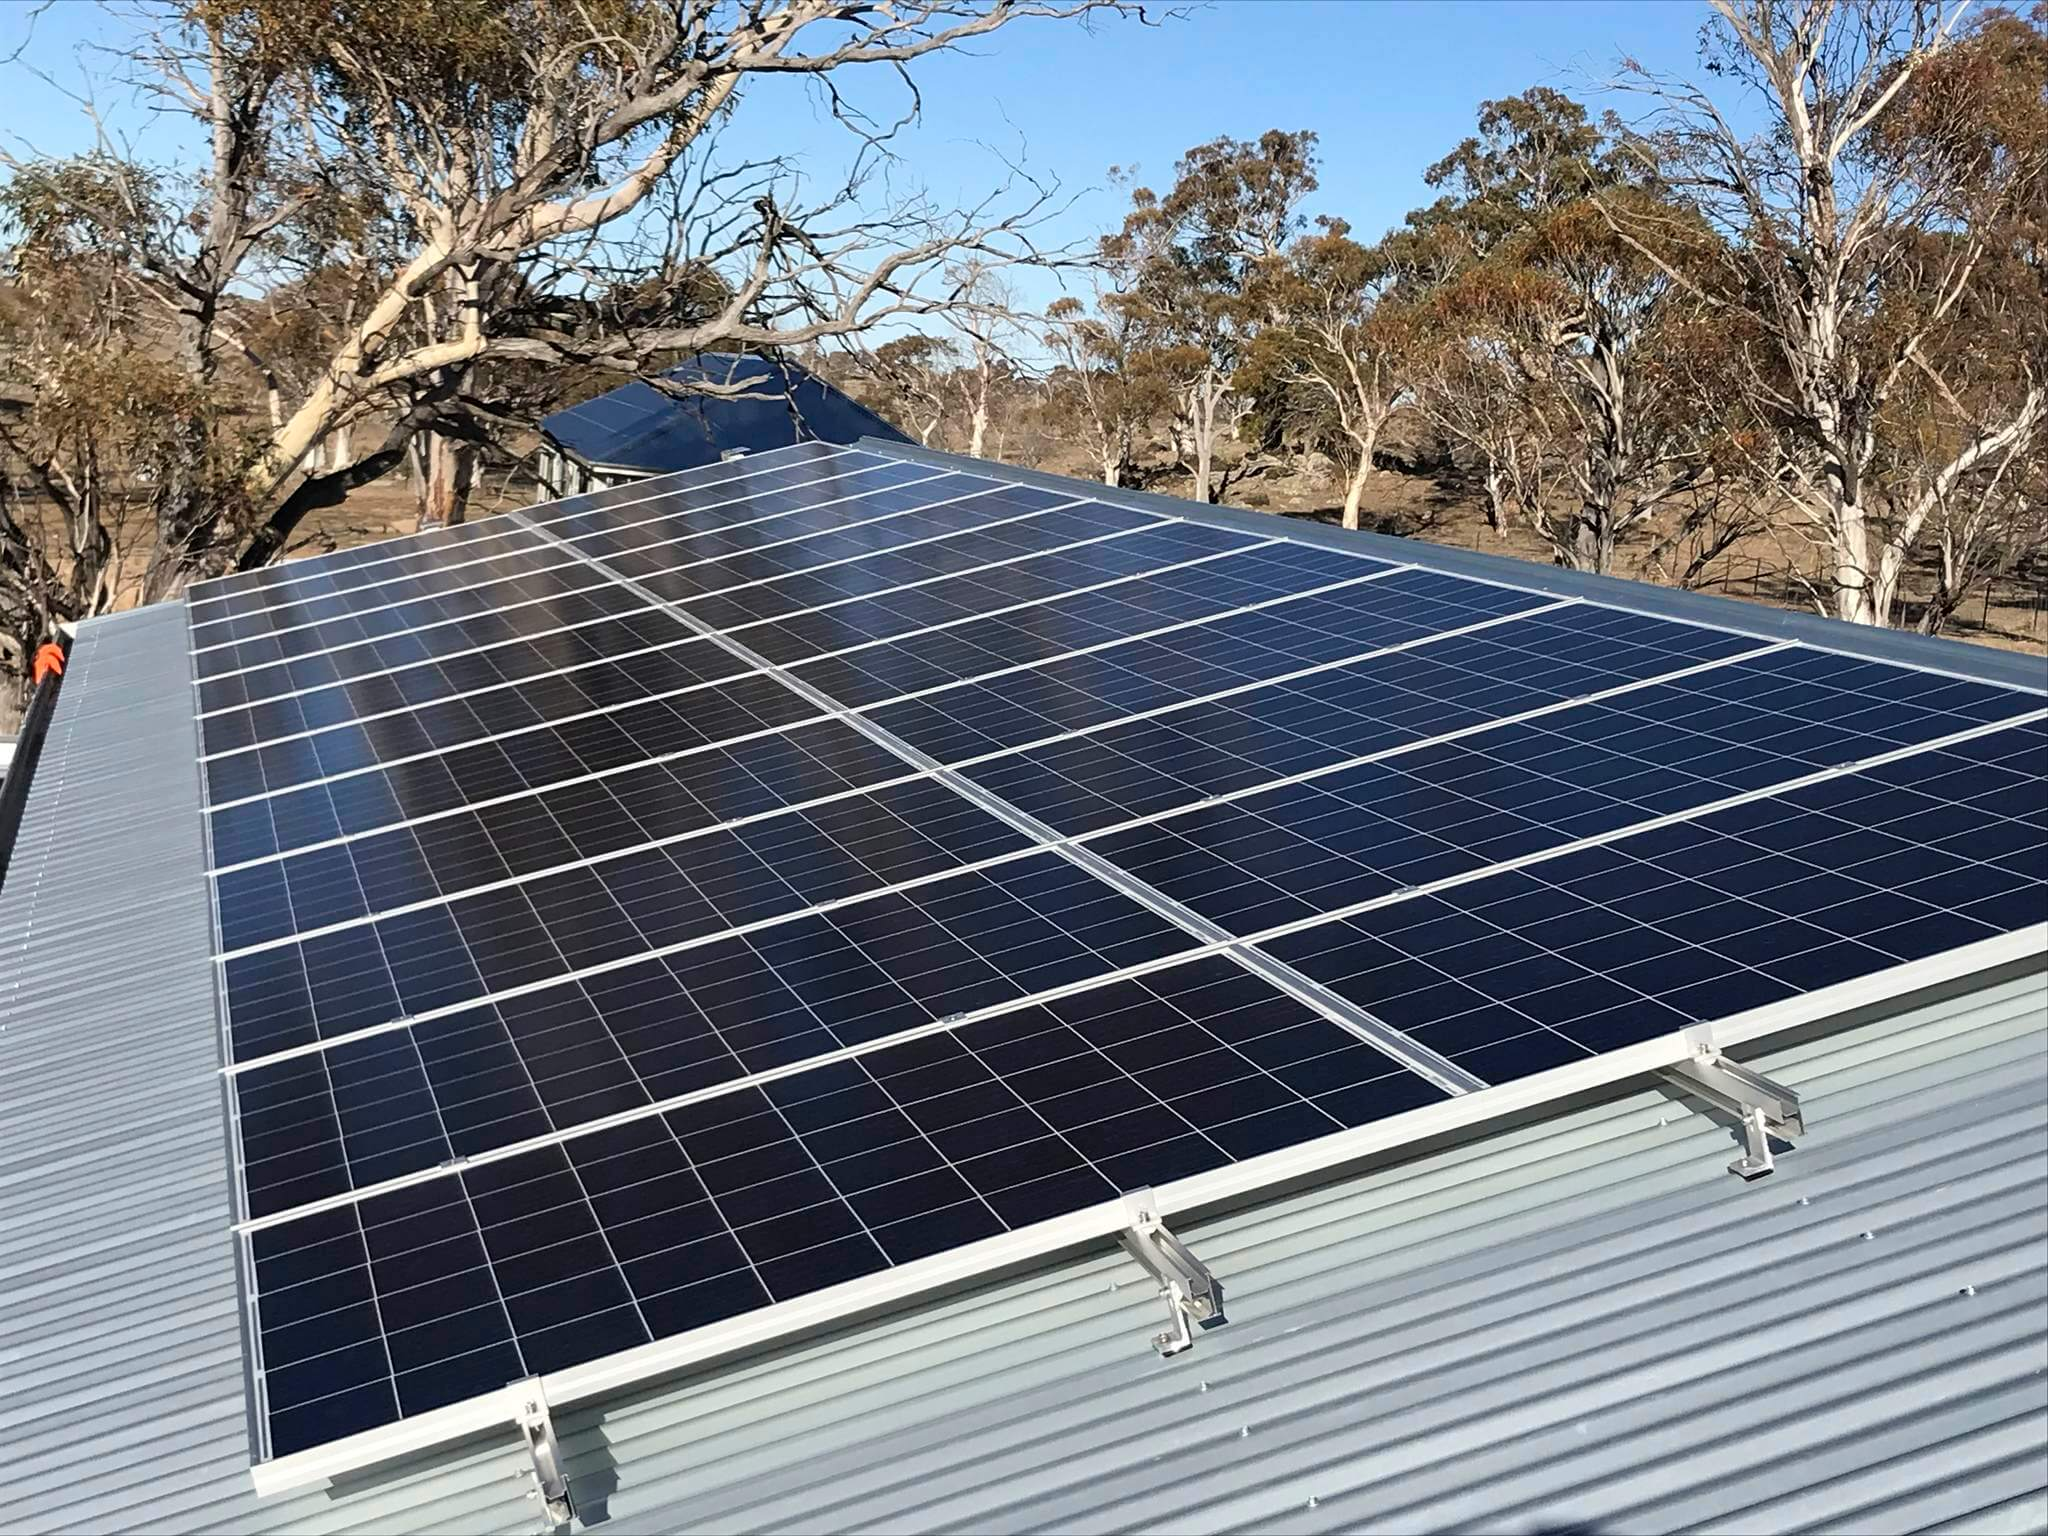 Snowy Regional Solar - Shed mounted arrays, Ingebyra, NSW 2